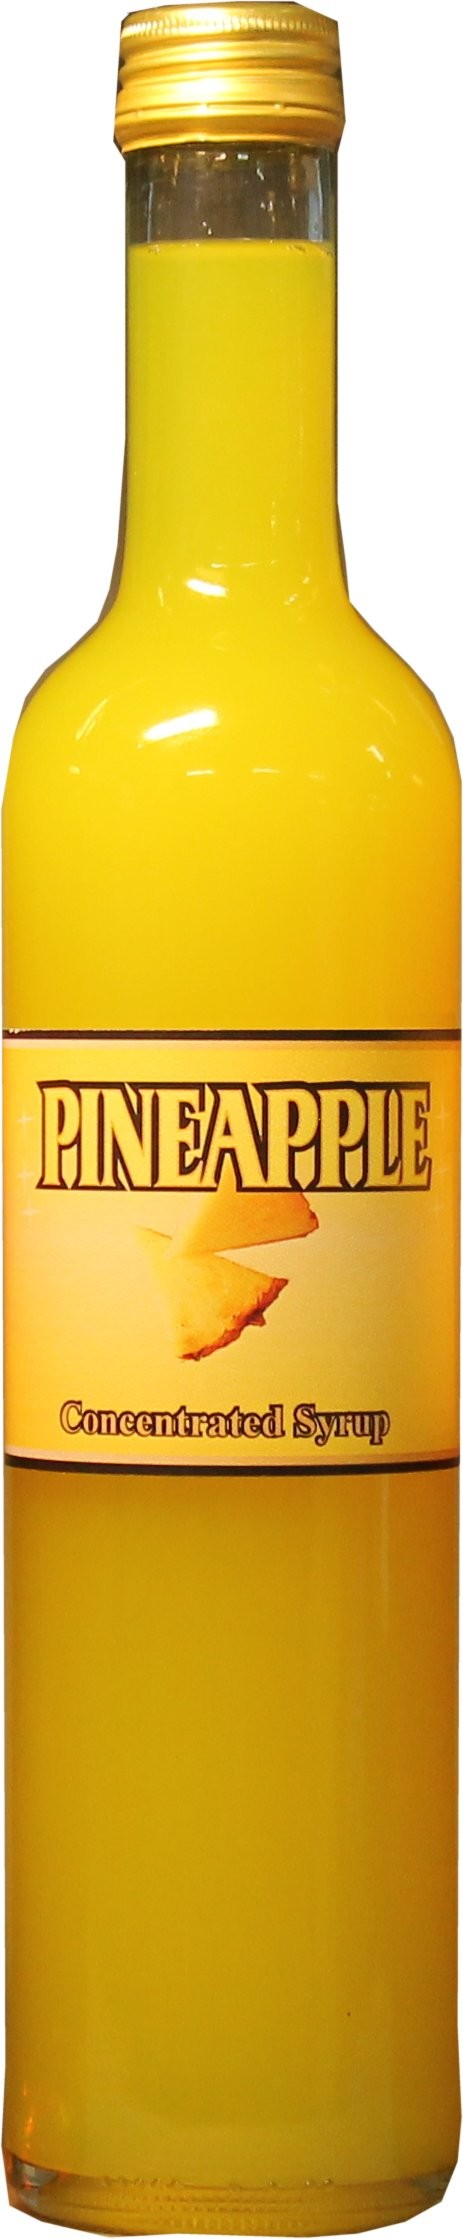 Pineapple 50 cl